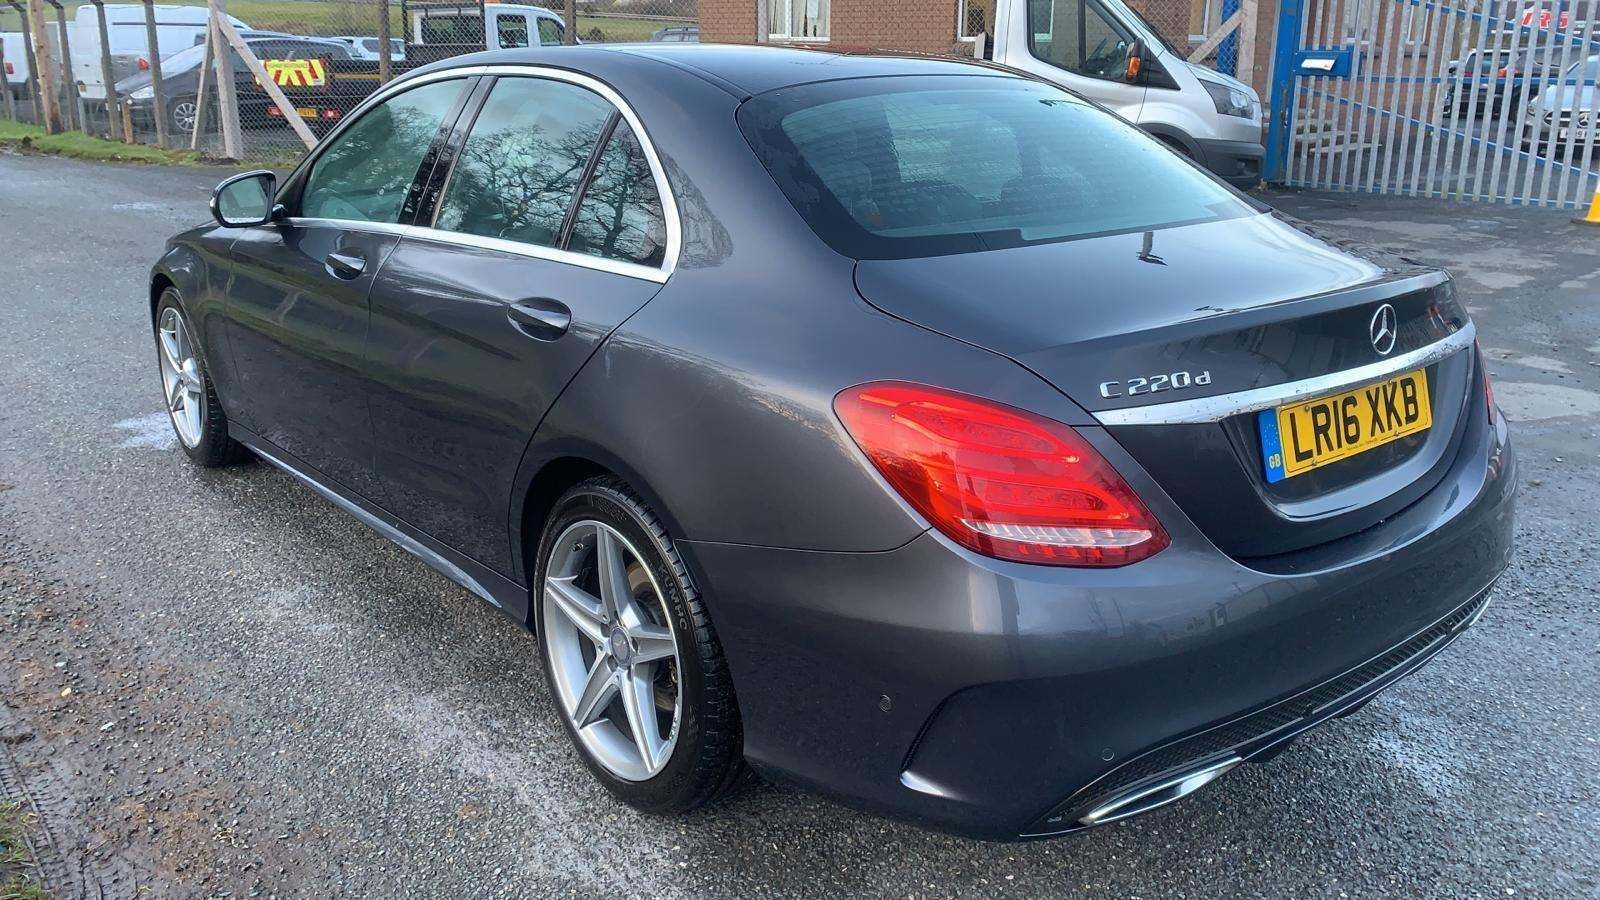 2016 MERCEDES BENZ C Class 2.1 C220d AMG Line 7G-Tronic+ (s/s) Diesel Automatic Heated Front Seats&Windscreen – J R S Commercials And Cars Dungannon full